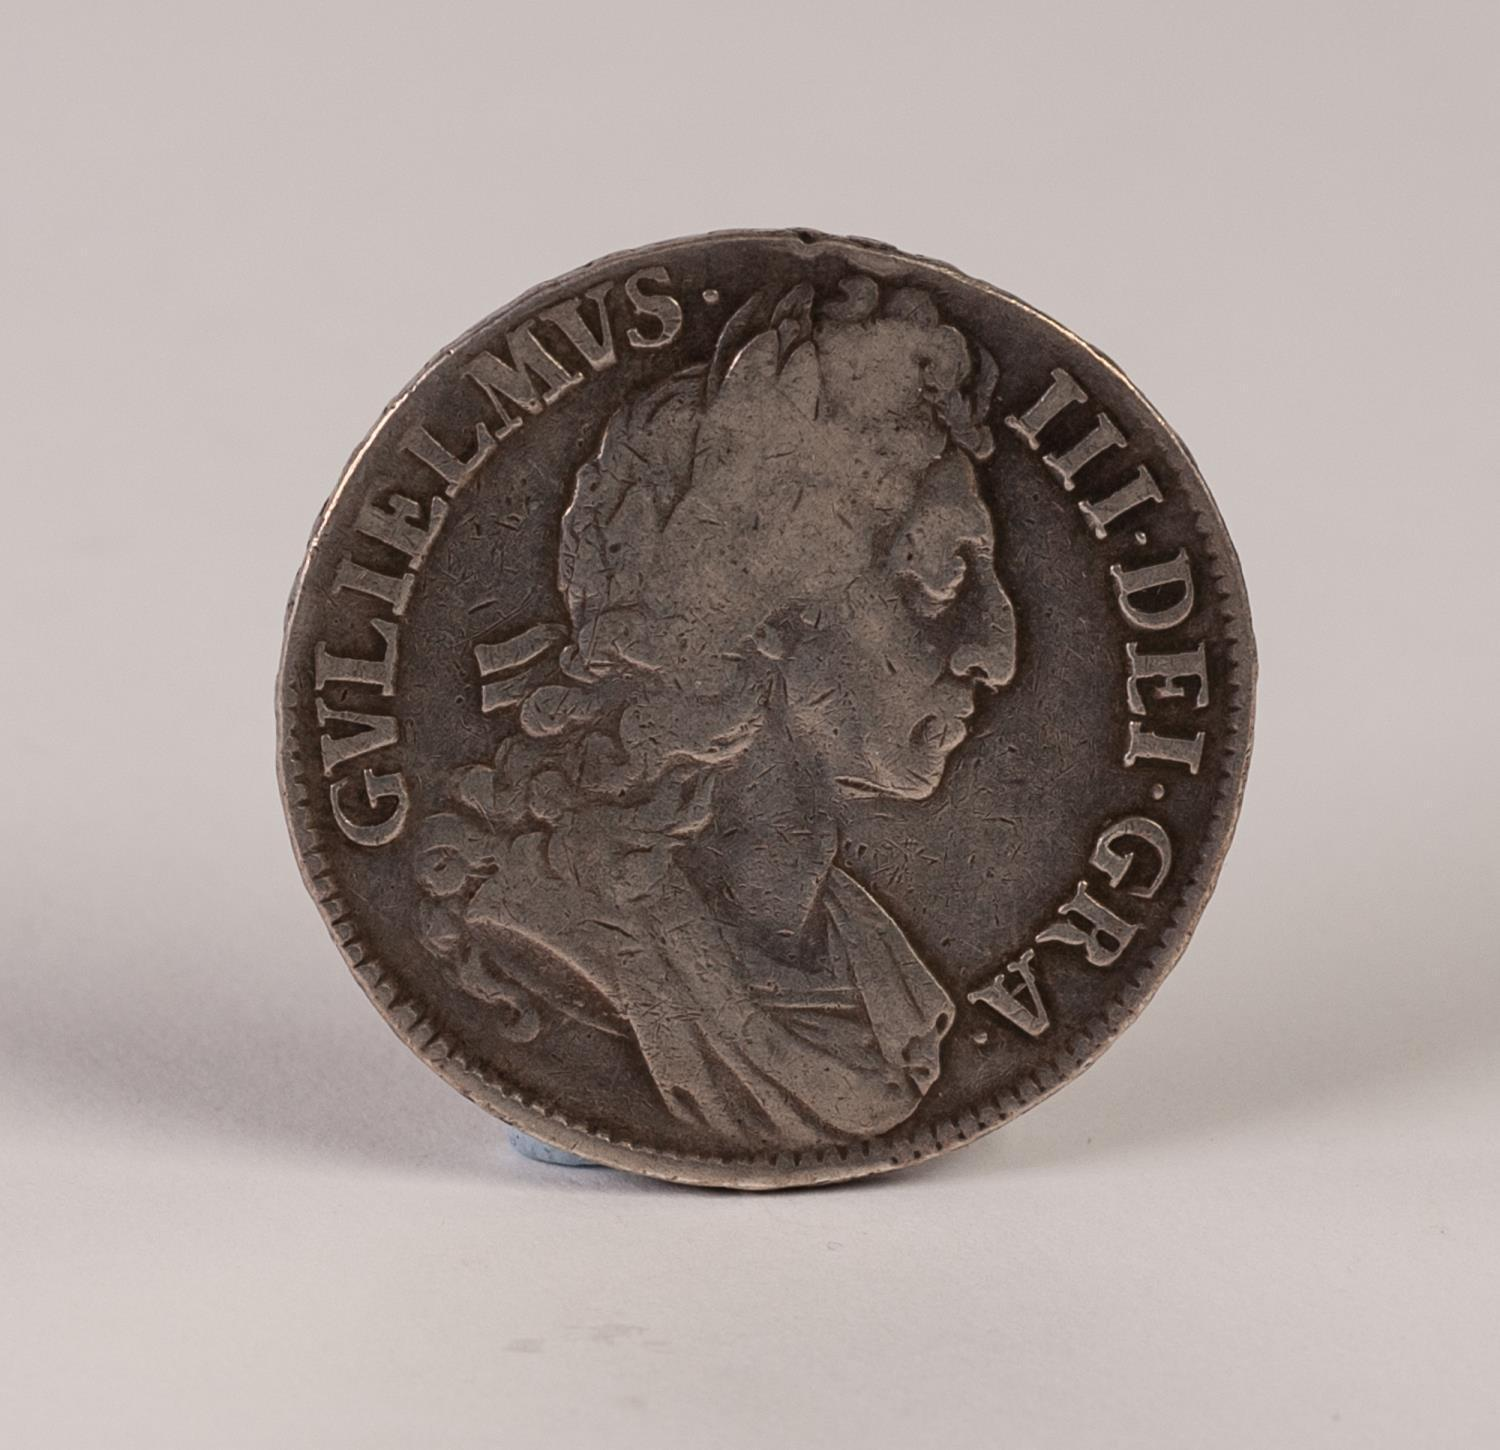 Lot 8 - WILLIAM III SILVER CROWN COIN 1696, 3rd bust, showing wear